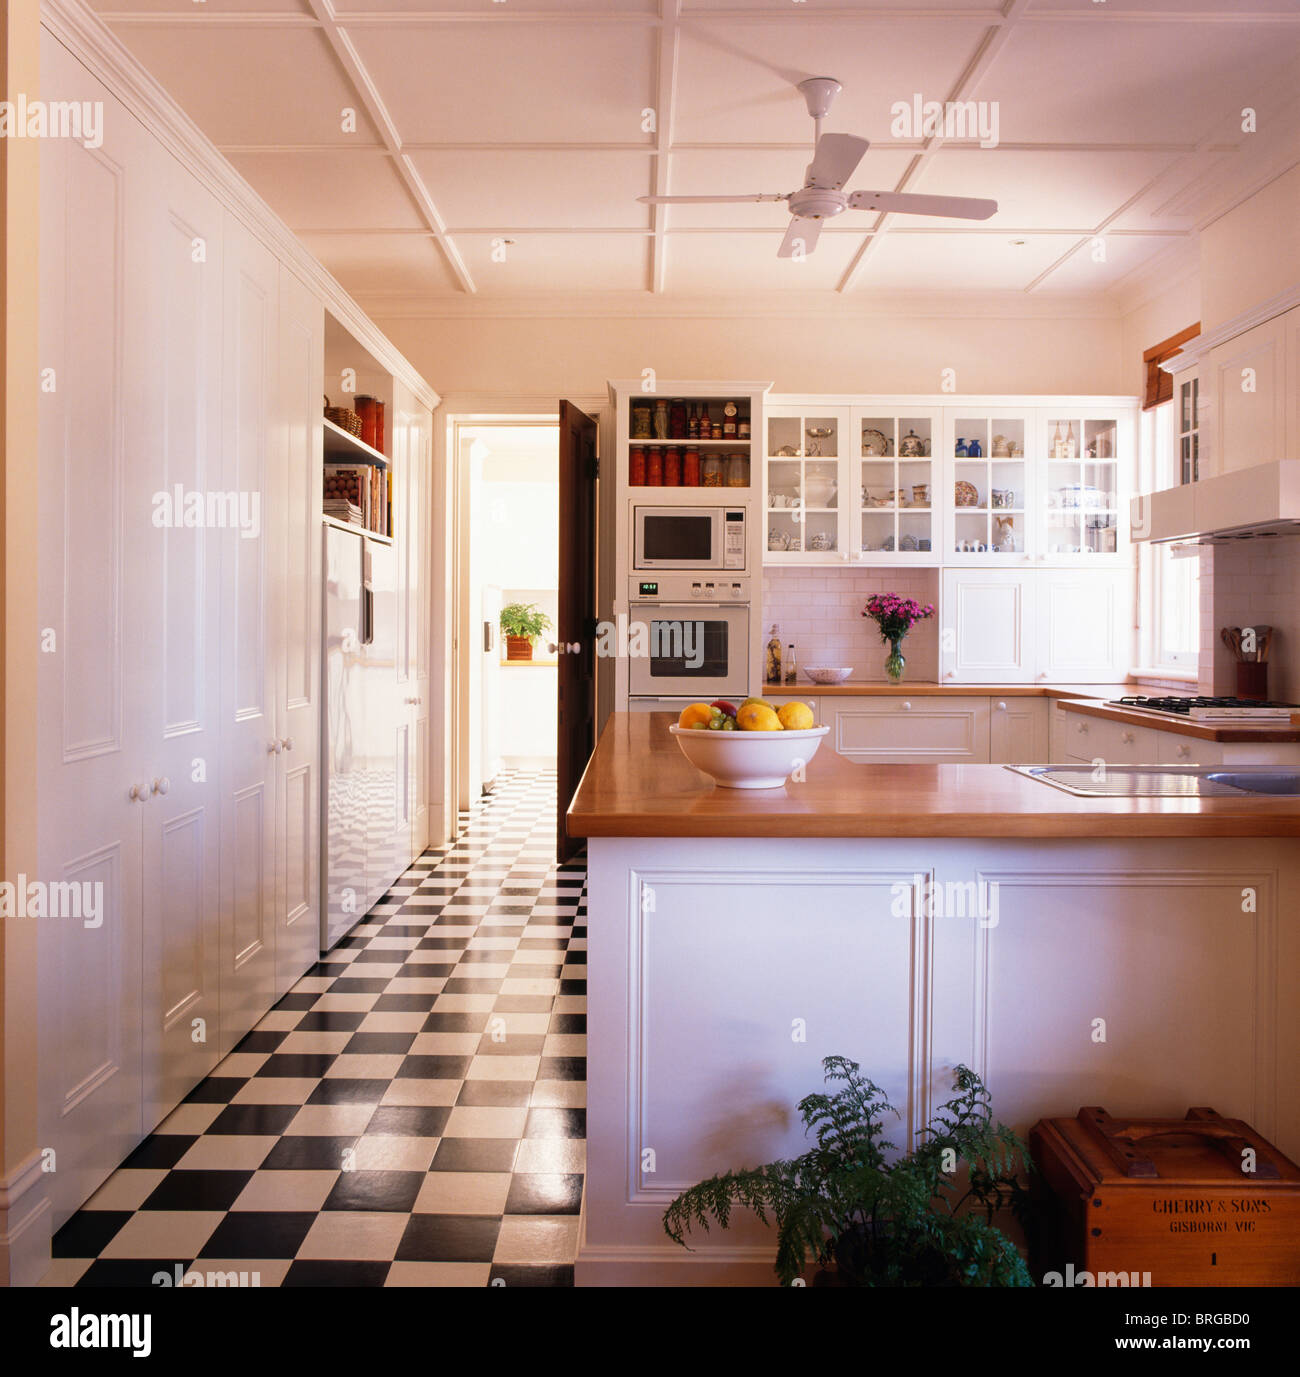 Checkerboard Kitchen Floor Checkerboard Floor Stock Photos Checkerboard Floor Stock Images